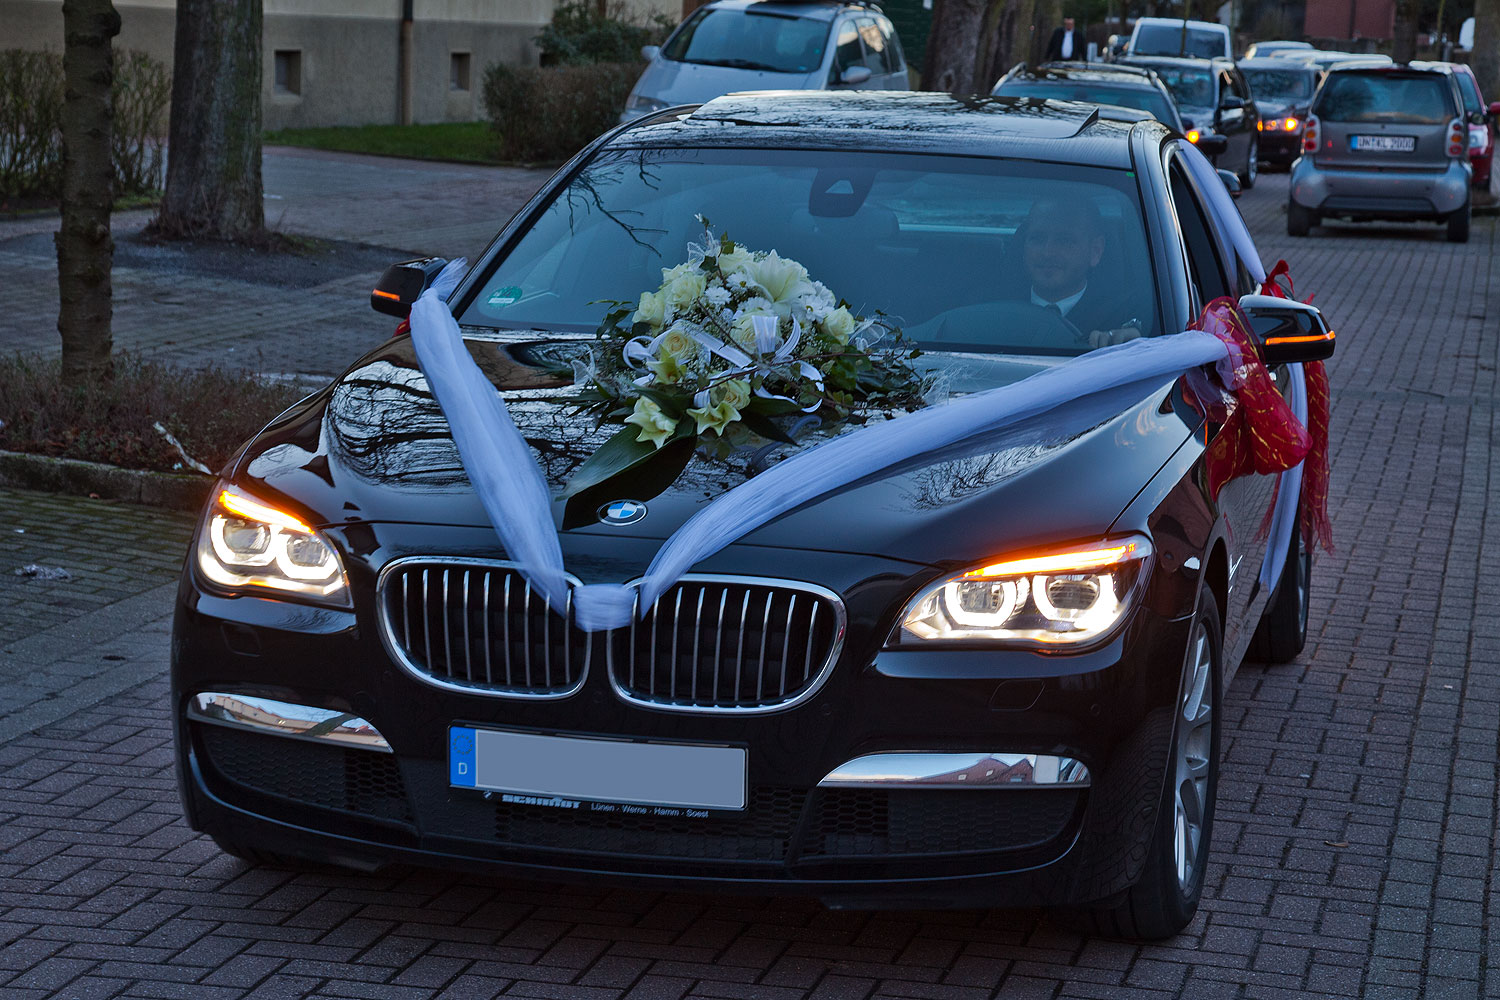 foto hochzeitsauto bmw 730d f01 lci vergr ert. Black Bedroom Furniture Sets. Home Design Ideas